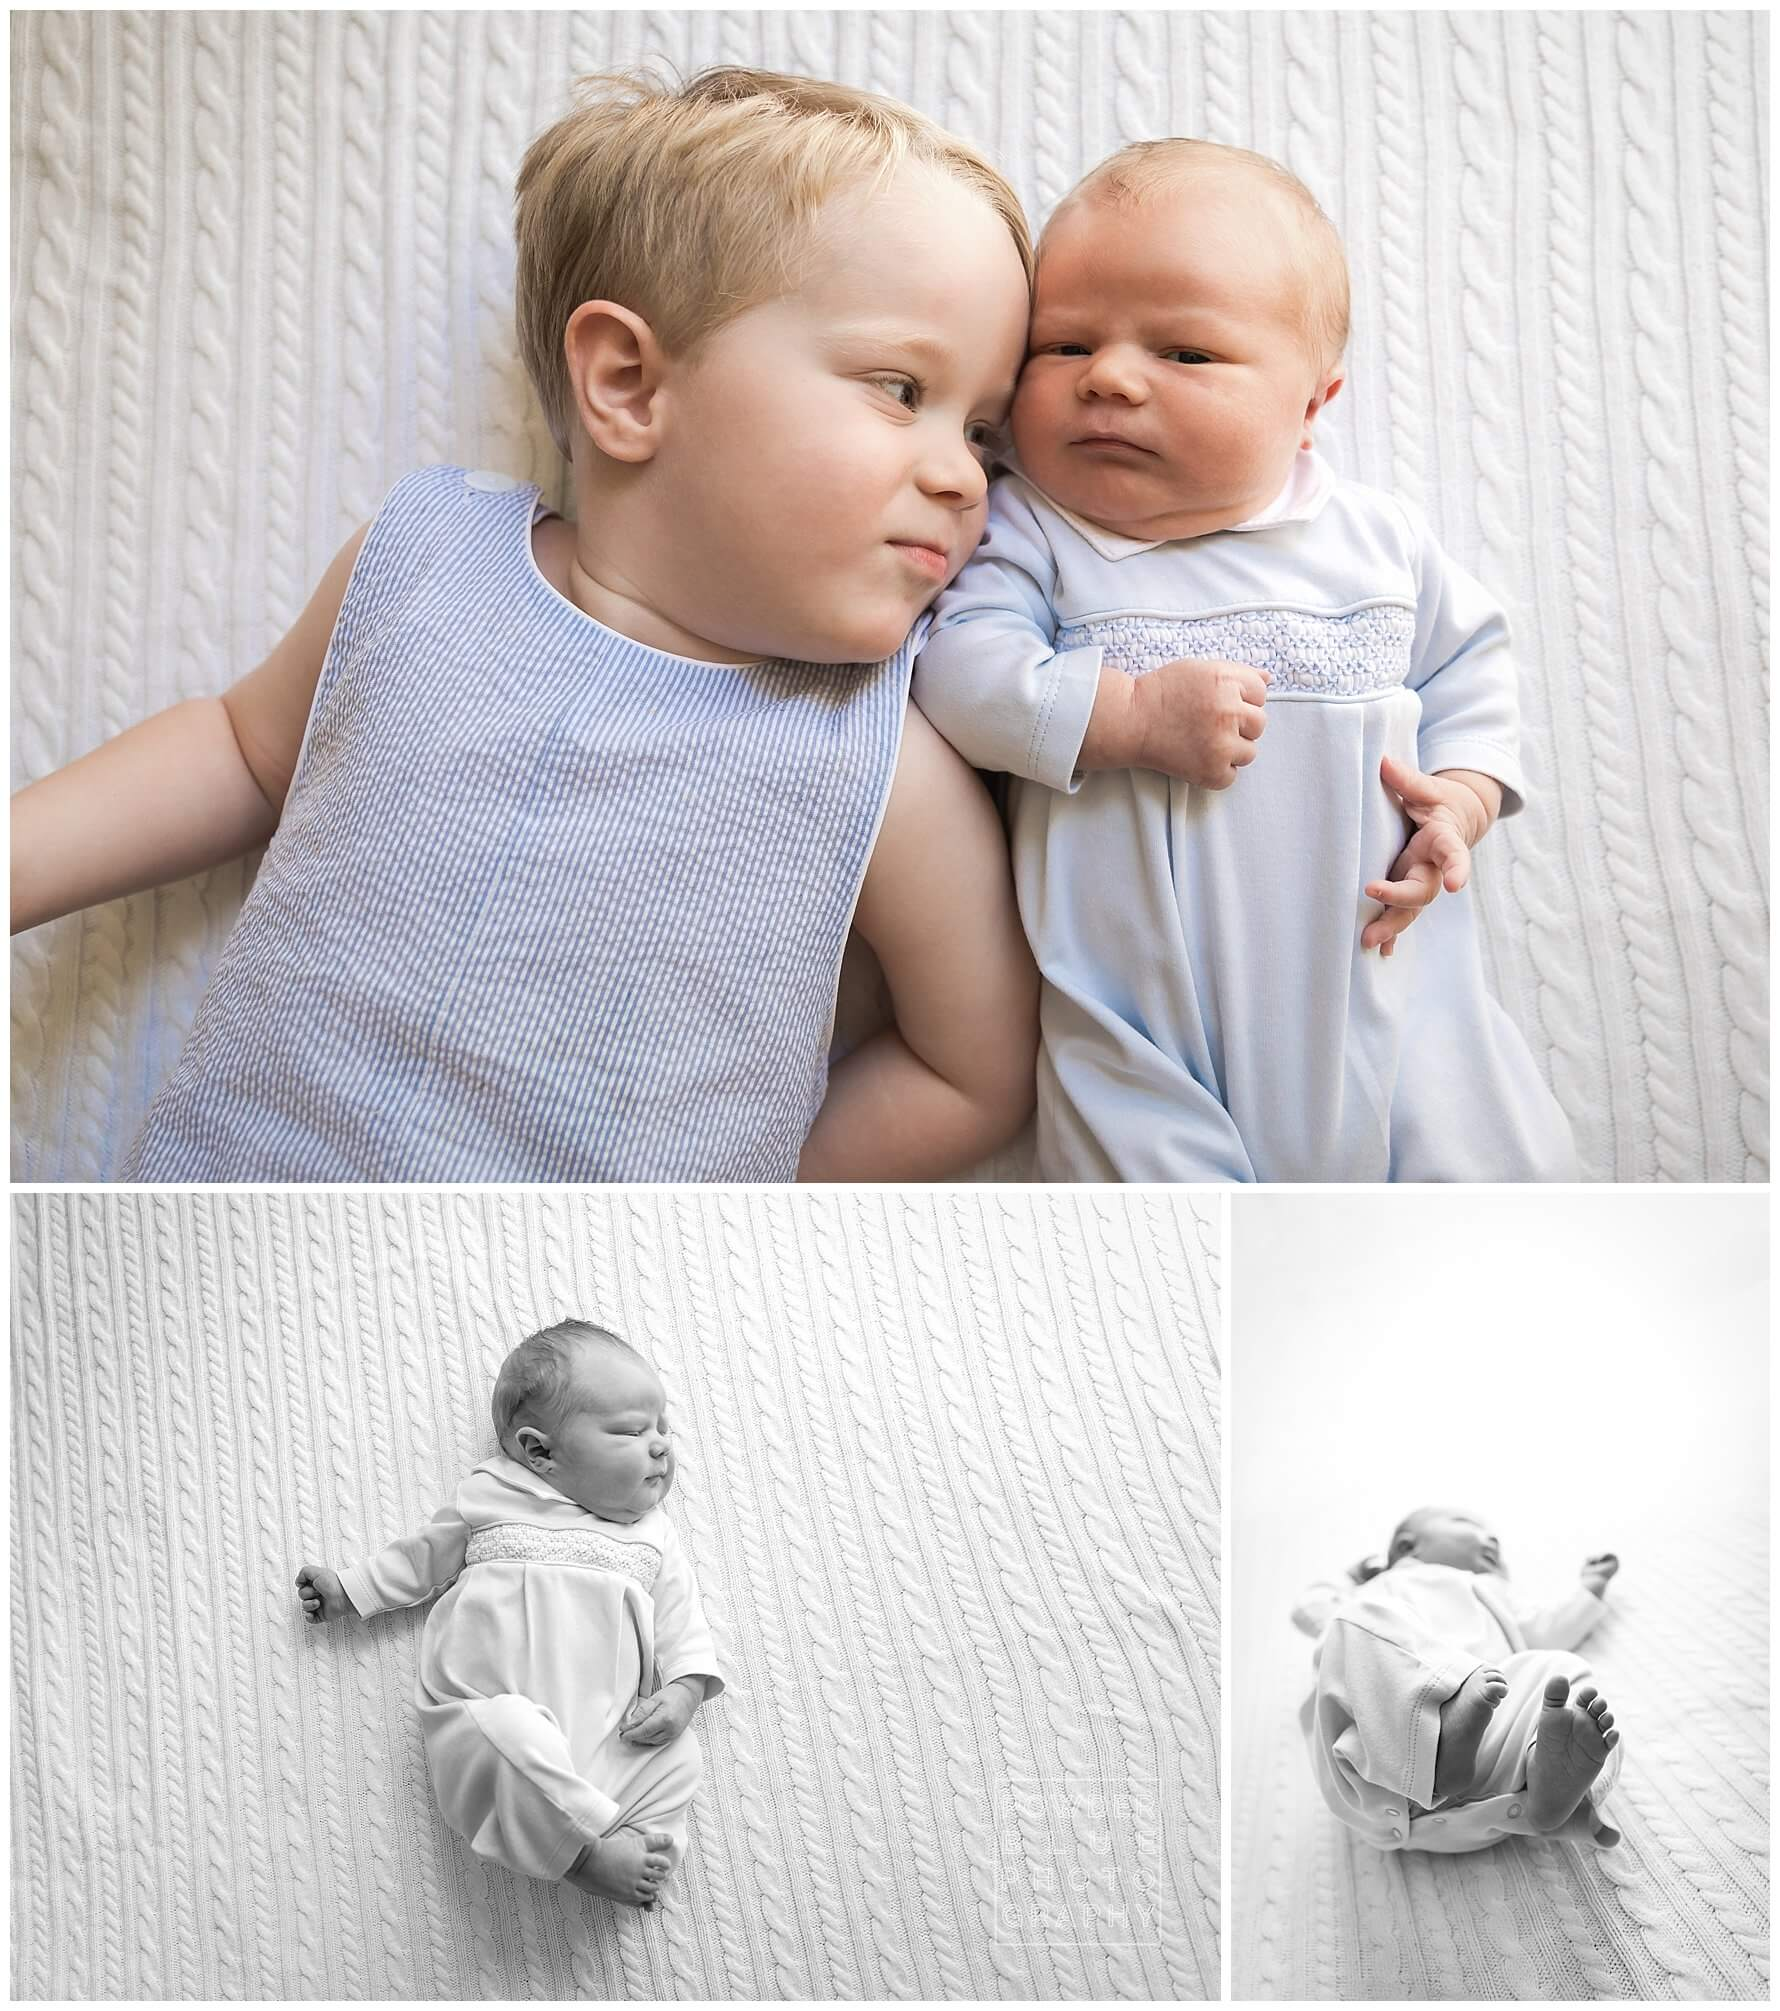 newborn, blue and white, brothers